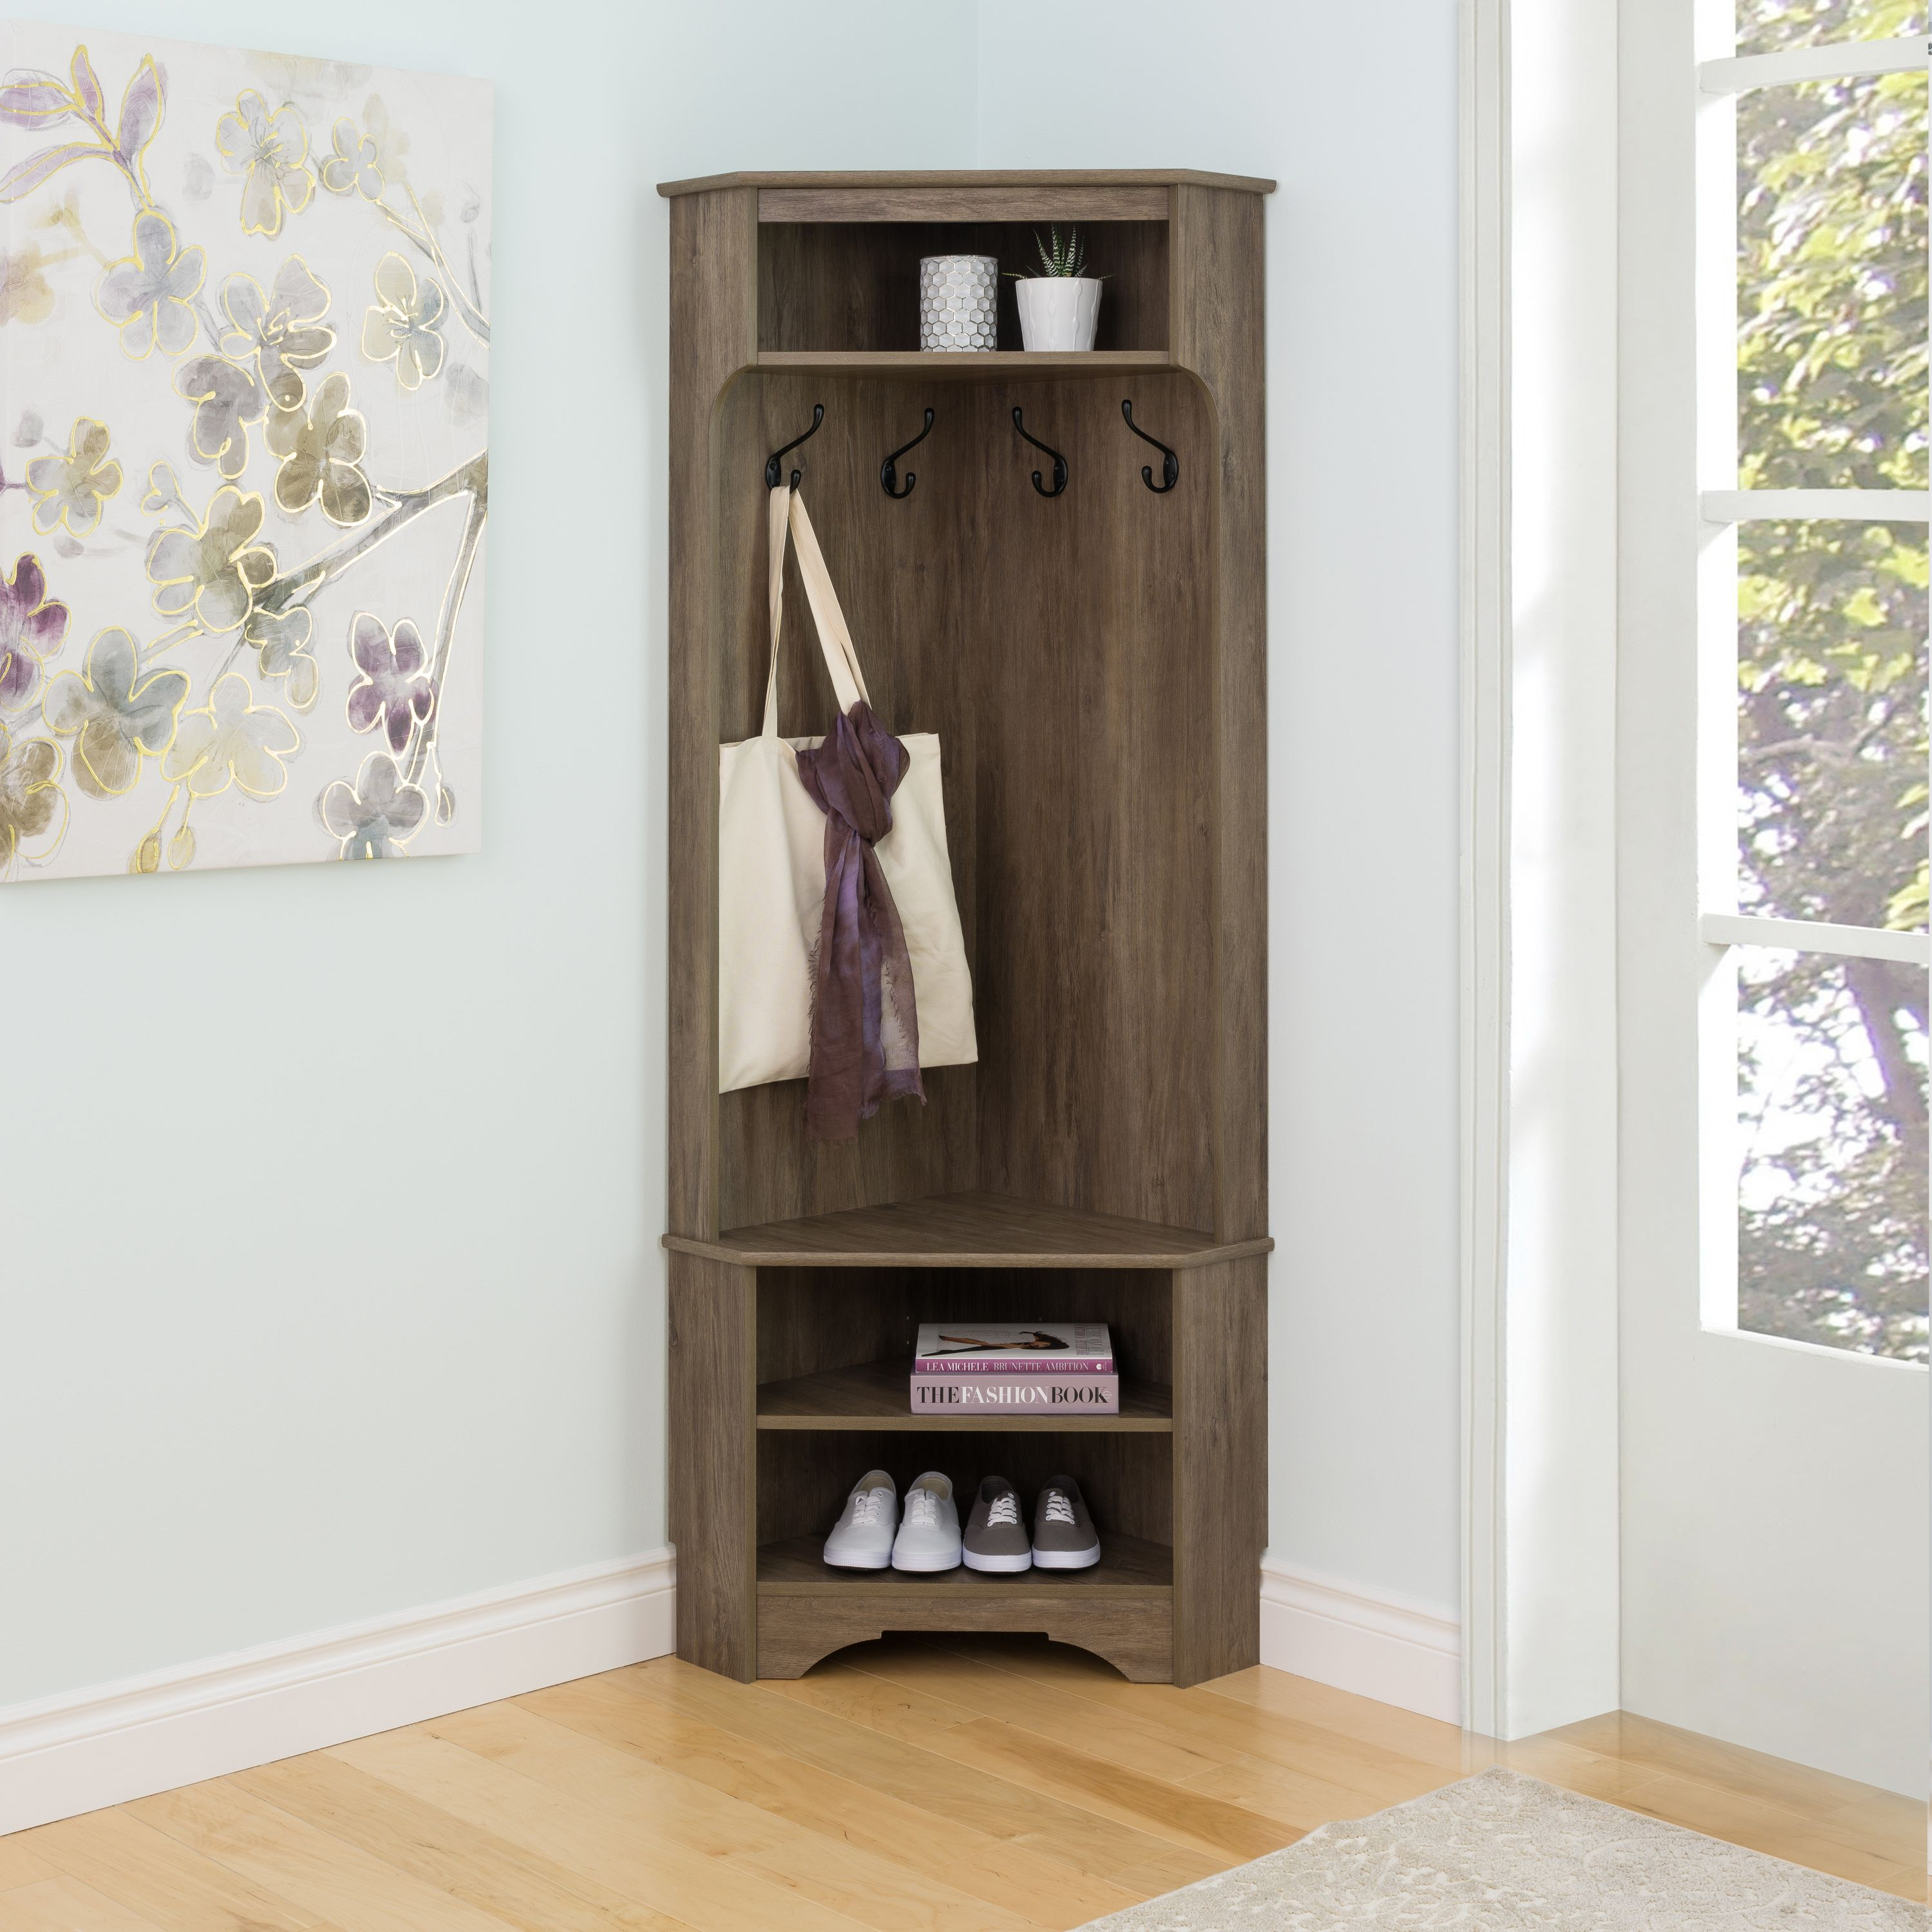 Prepac DSCC-0606-1 Corner Hall Tree with Storage, Drifted Gray